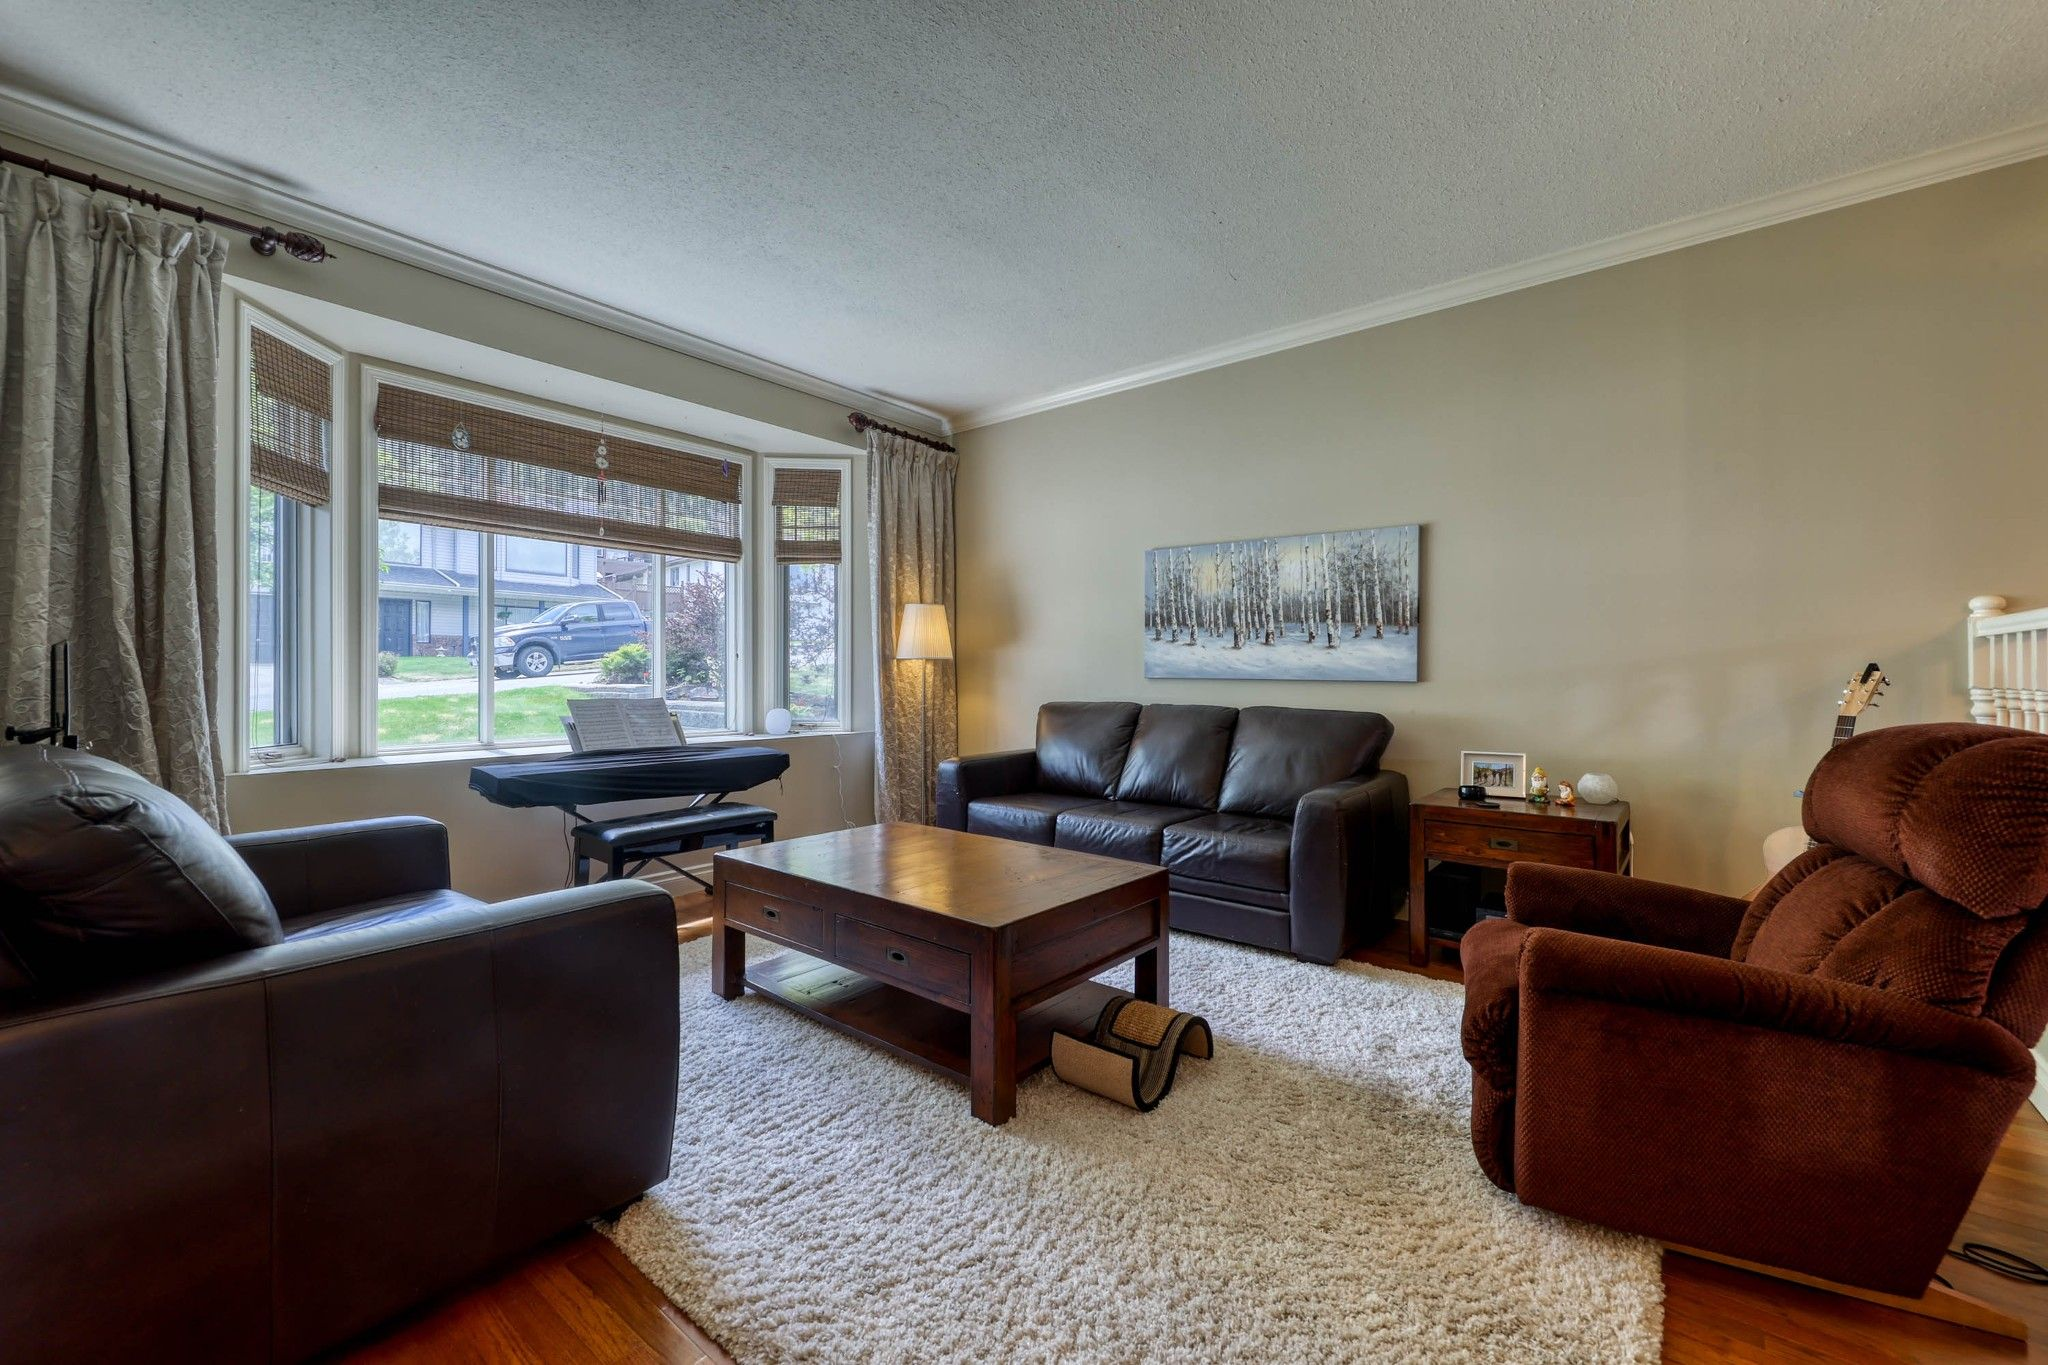 Photo 7: Photos: 2816 Capilano Drive in Kamloops: Juniper Heights House for sale : MLS®# 162002